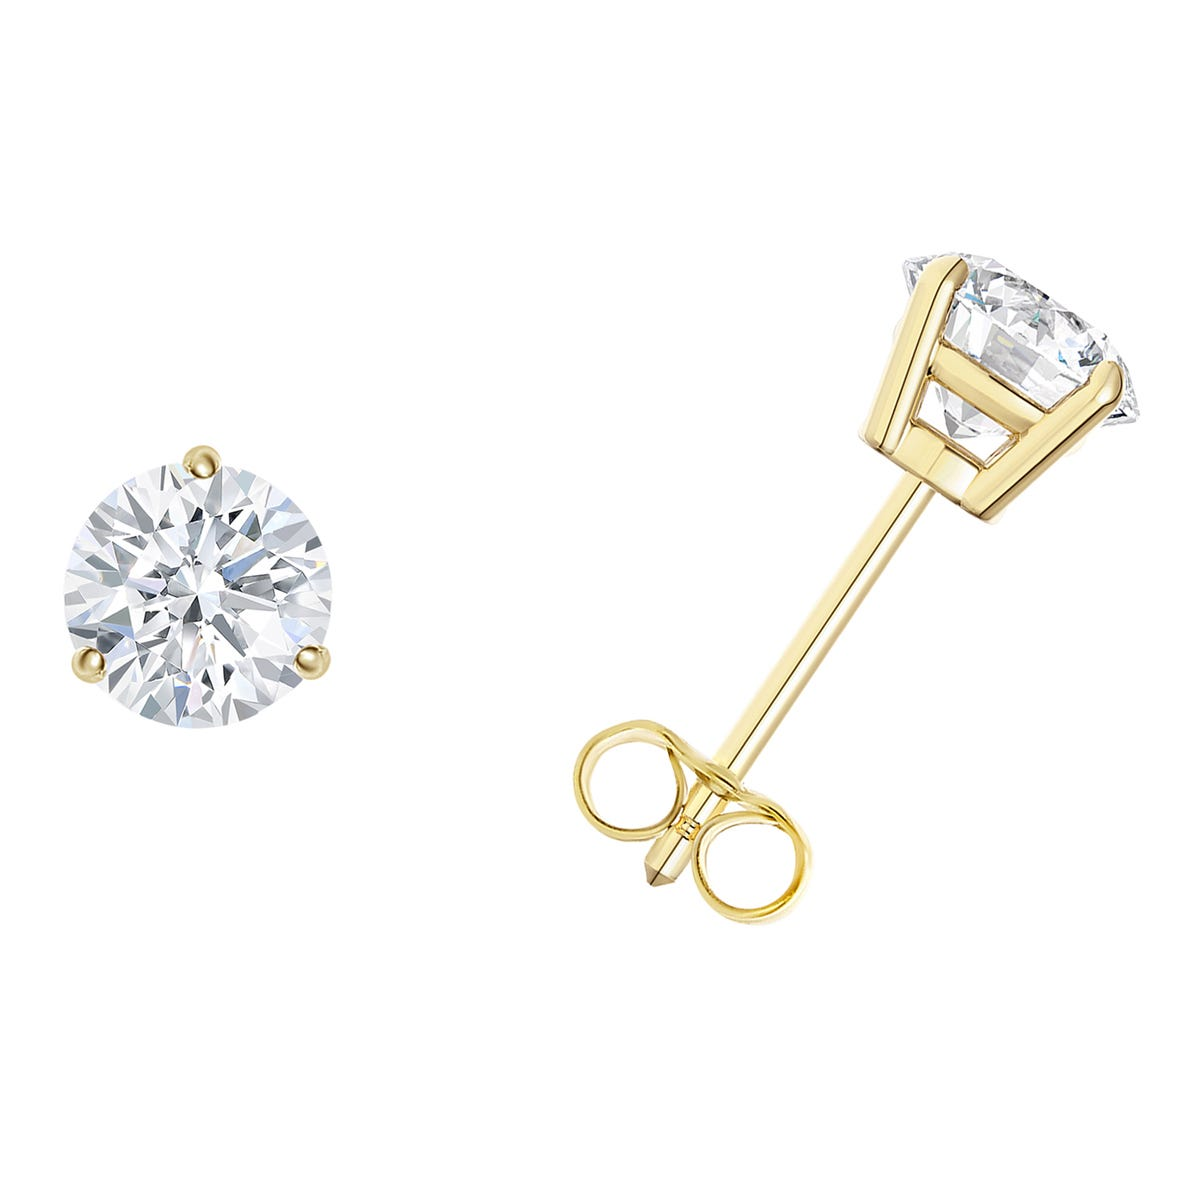 1/4 CTTW Round Diamond Solitaire Stud Earrings in 10K Yellow Gold  IGI Certified